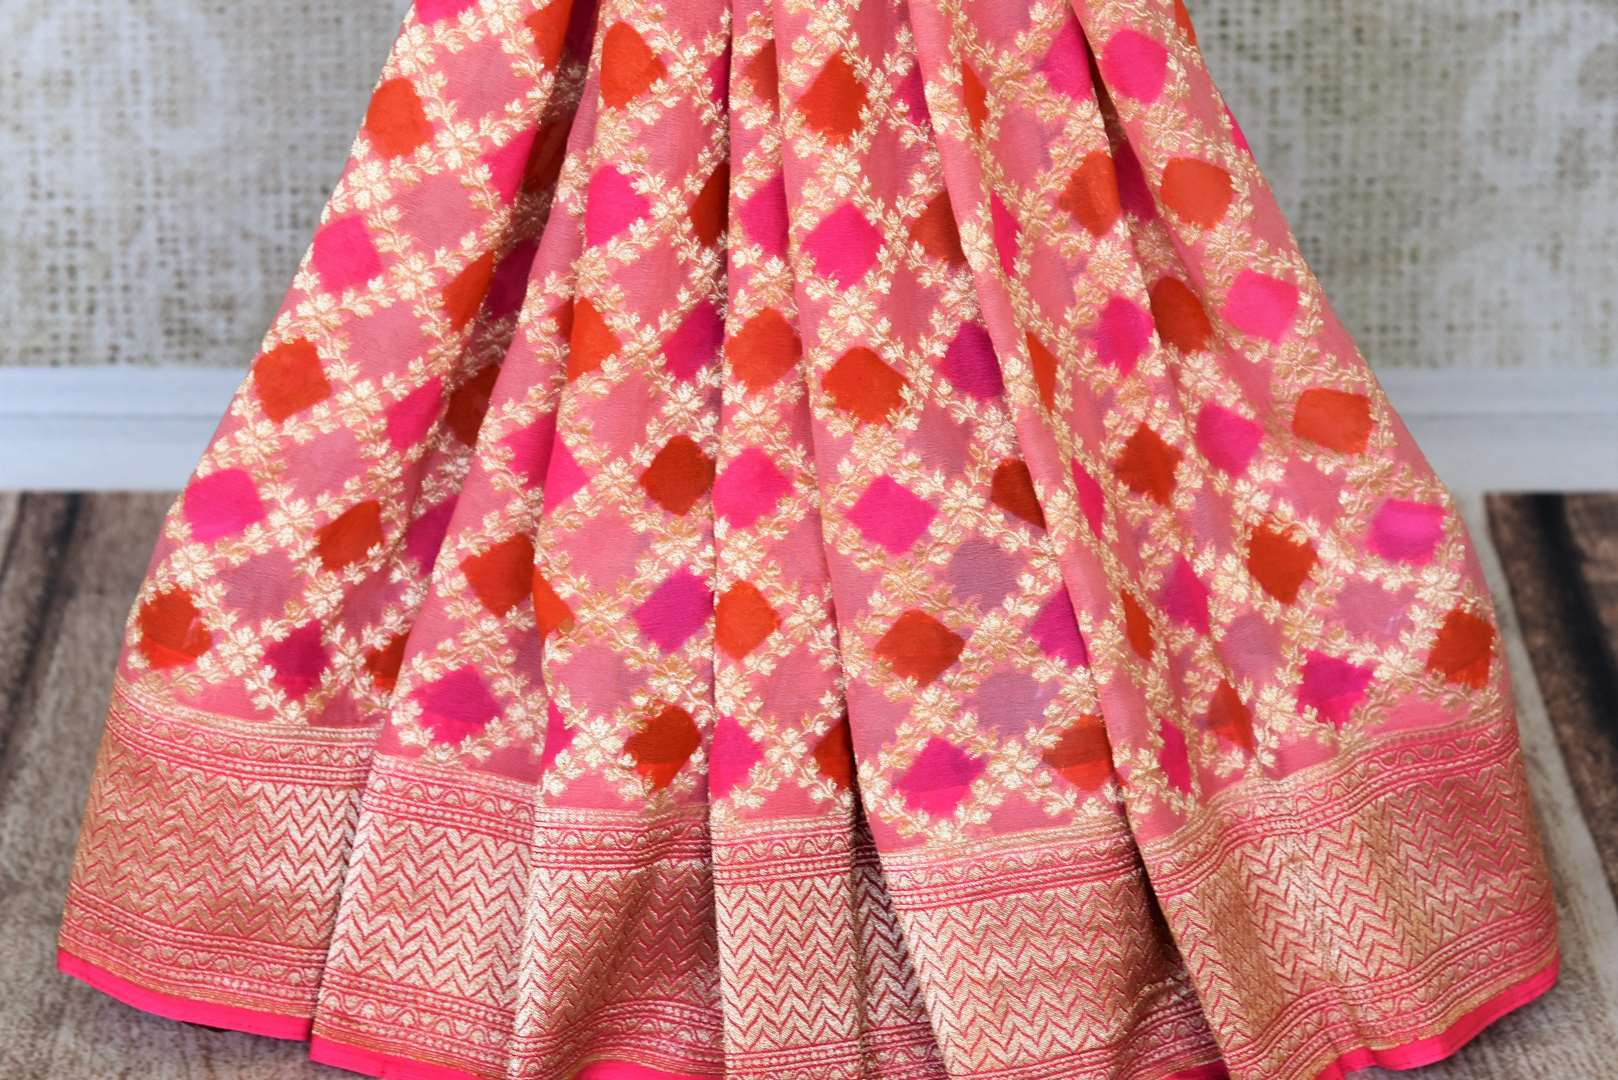 Exude feminity in this pink georgette banarsi silk saree. Perfect for summer-time weddings and parties, this sari comes with a stylish pink blouse. The sari has a zari border and handwoven motifs all over with a rich embroidered pallu. Shop such handcrafted silk sarees online or visit Pure Elegance store, USA. -pleats